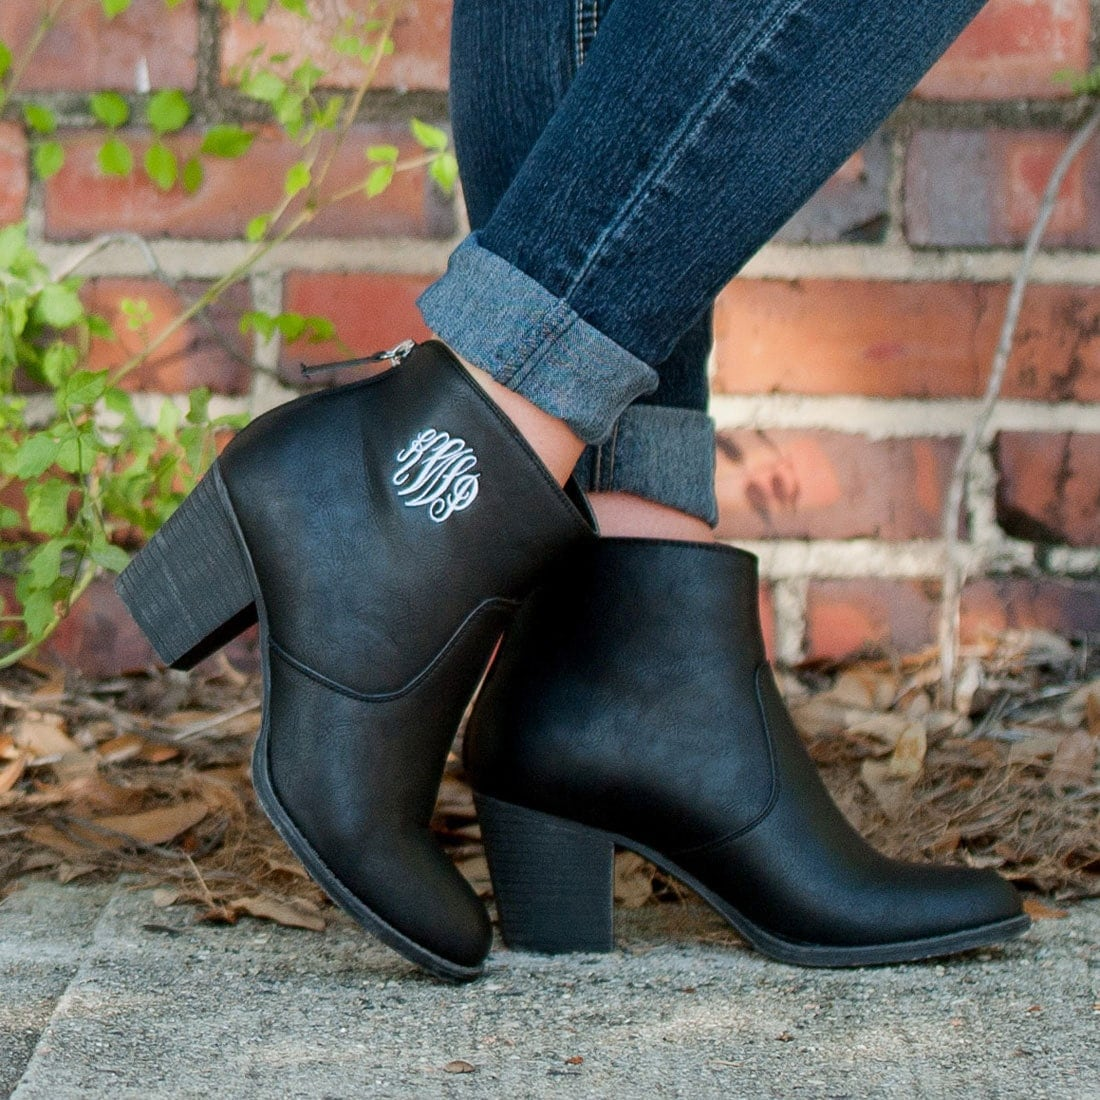 Black Initial Boots Monogram Ankle Boots Womens Boots